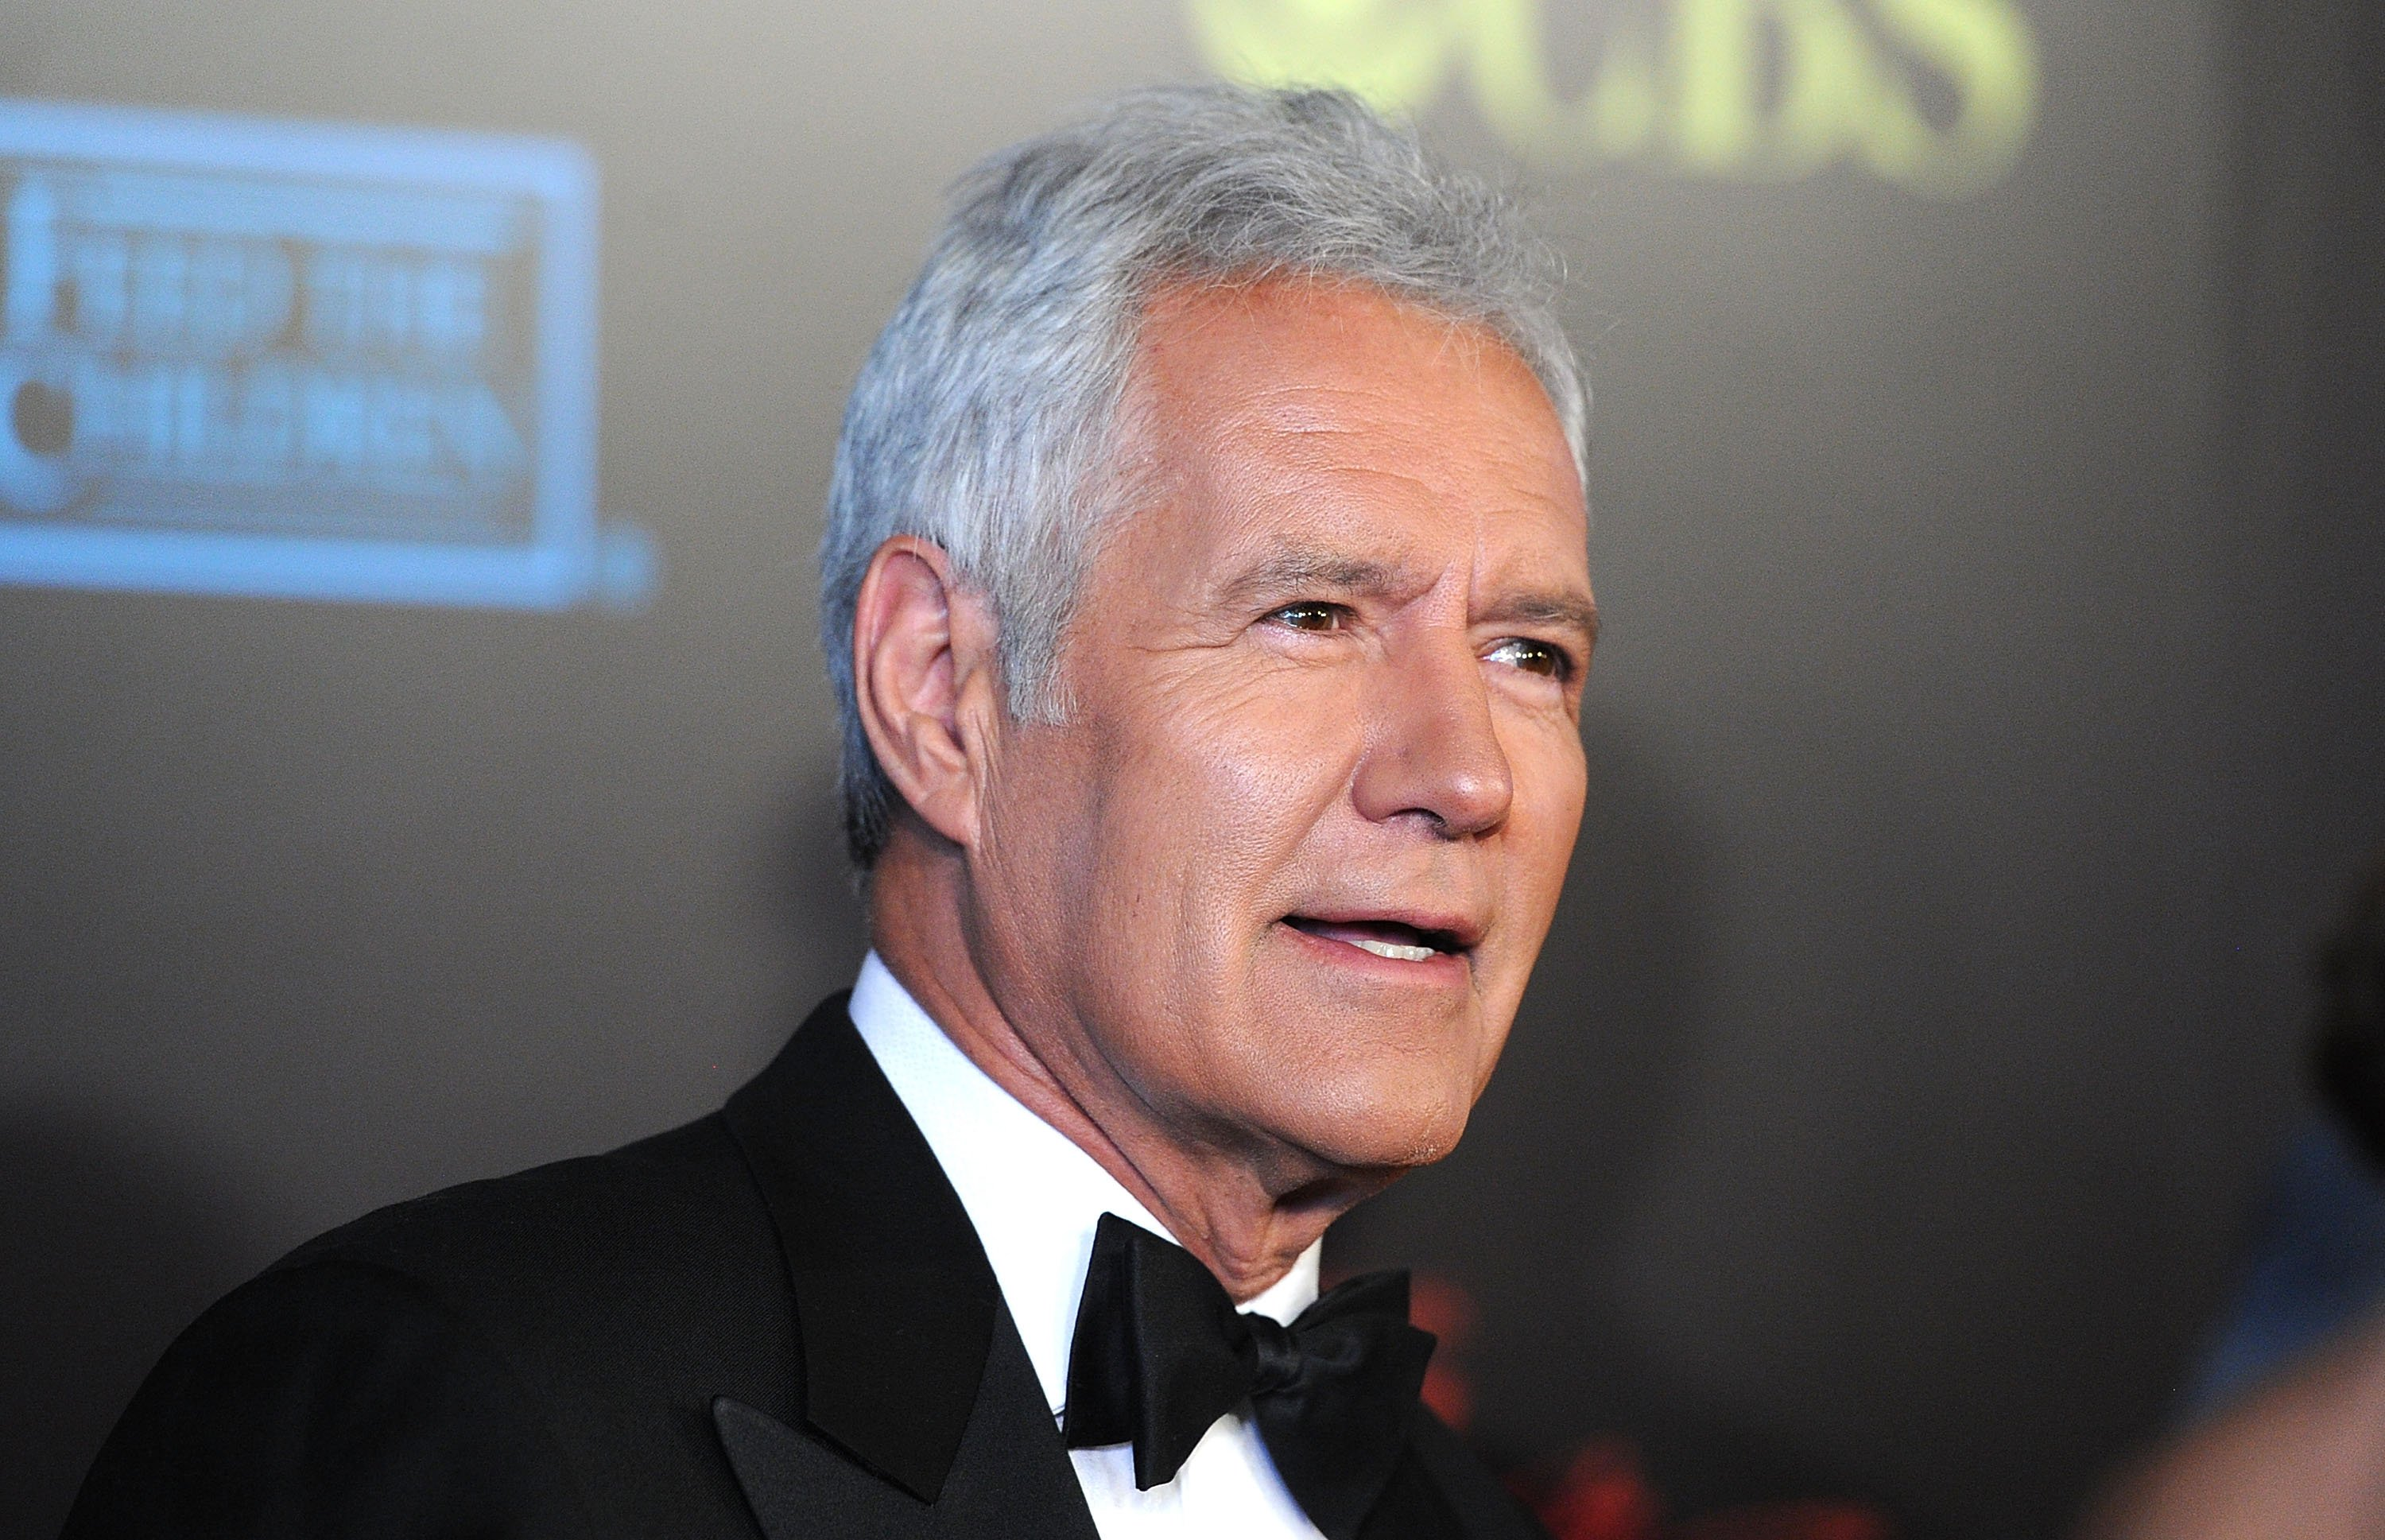 Alex Trebek arrives at the 37th Annual Daytime Entertainment Emmy Awards held at the Las Vegas Hilton on June 27, 2010 in Las Vegas, Nevada | Photo: Getty Images